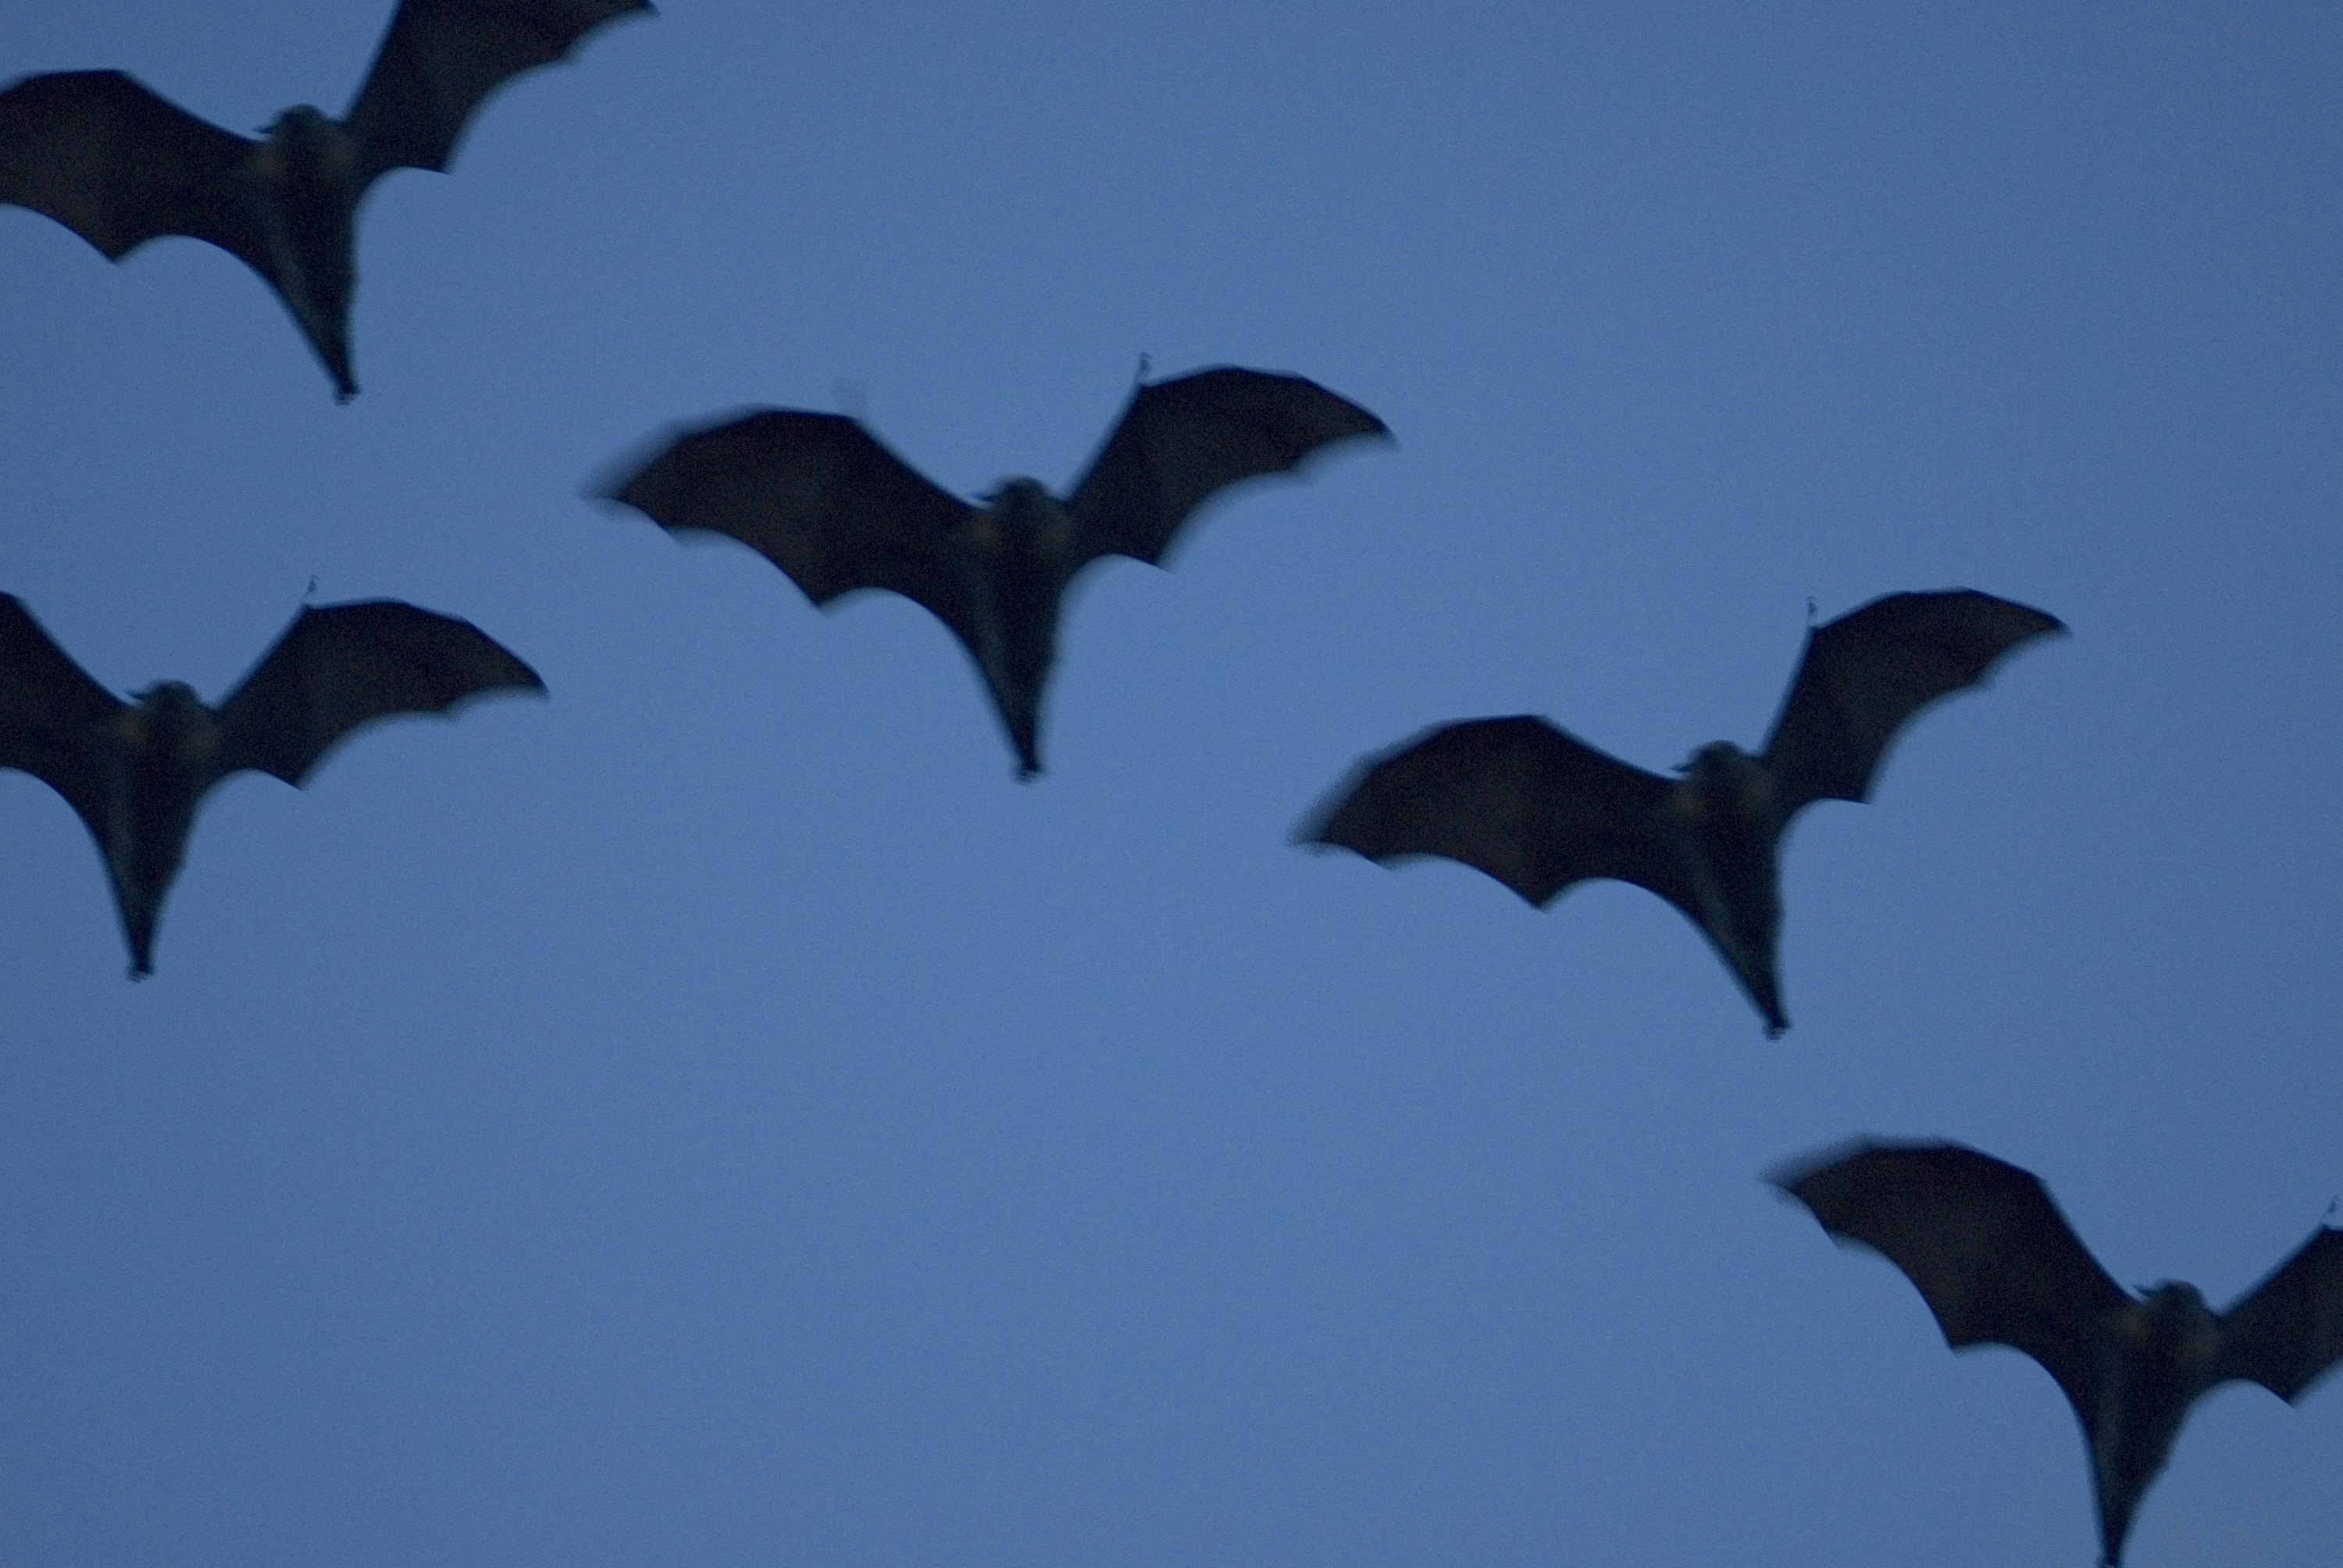 a cloud of bats in flight